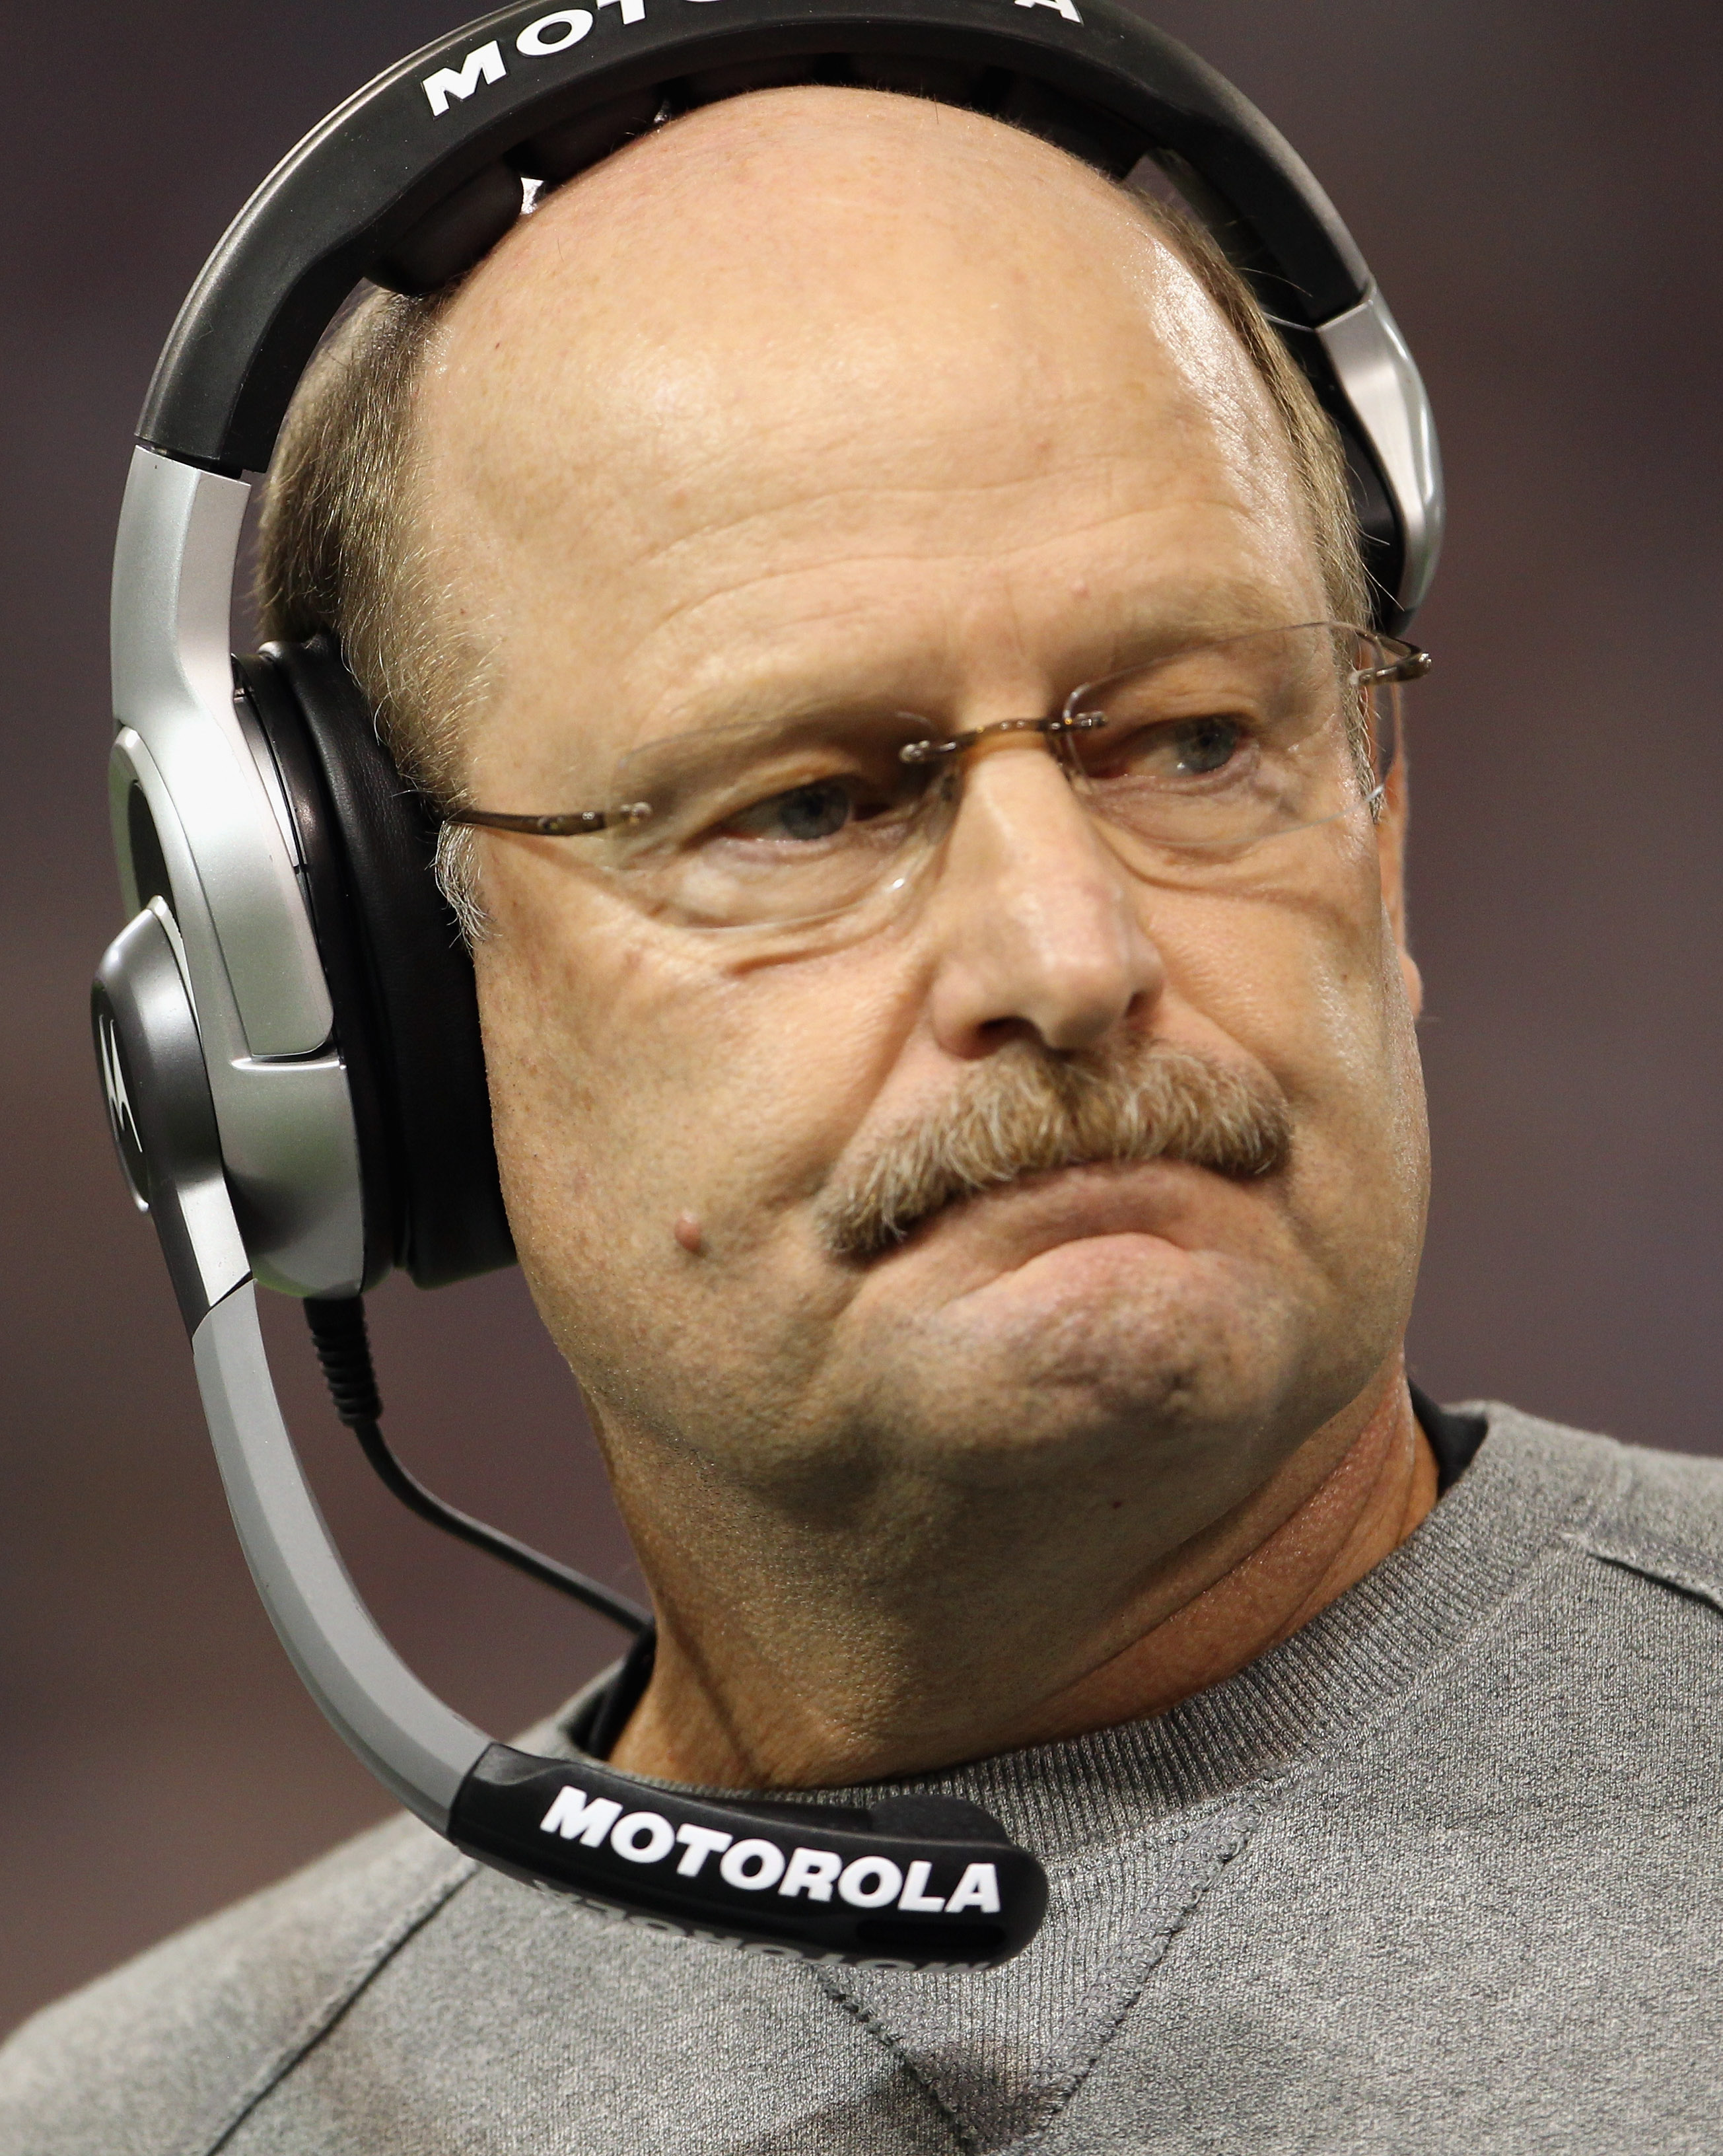 MINNEAPOLIS - SEPTEMBER 19:  Head coach Brad Childress of the Minnesota Vikings watches from the sidelines during the game against the Miami Dolphins on September 19, 2010 at Hubert H. Humphrey Metrodome in Minneapolis, Minnesota.  (Photo by Jamie Squire/